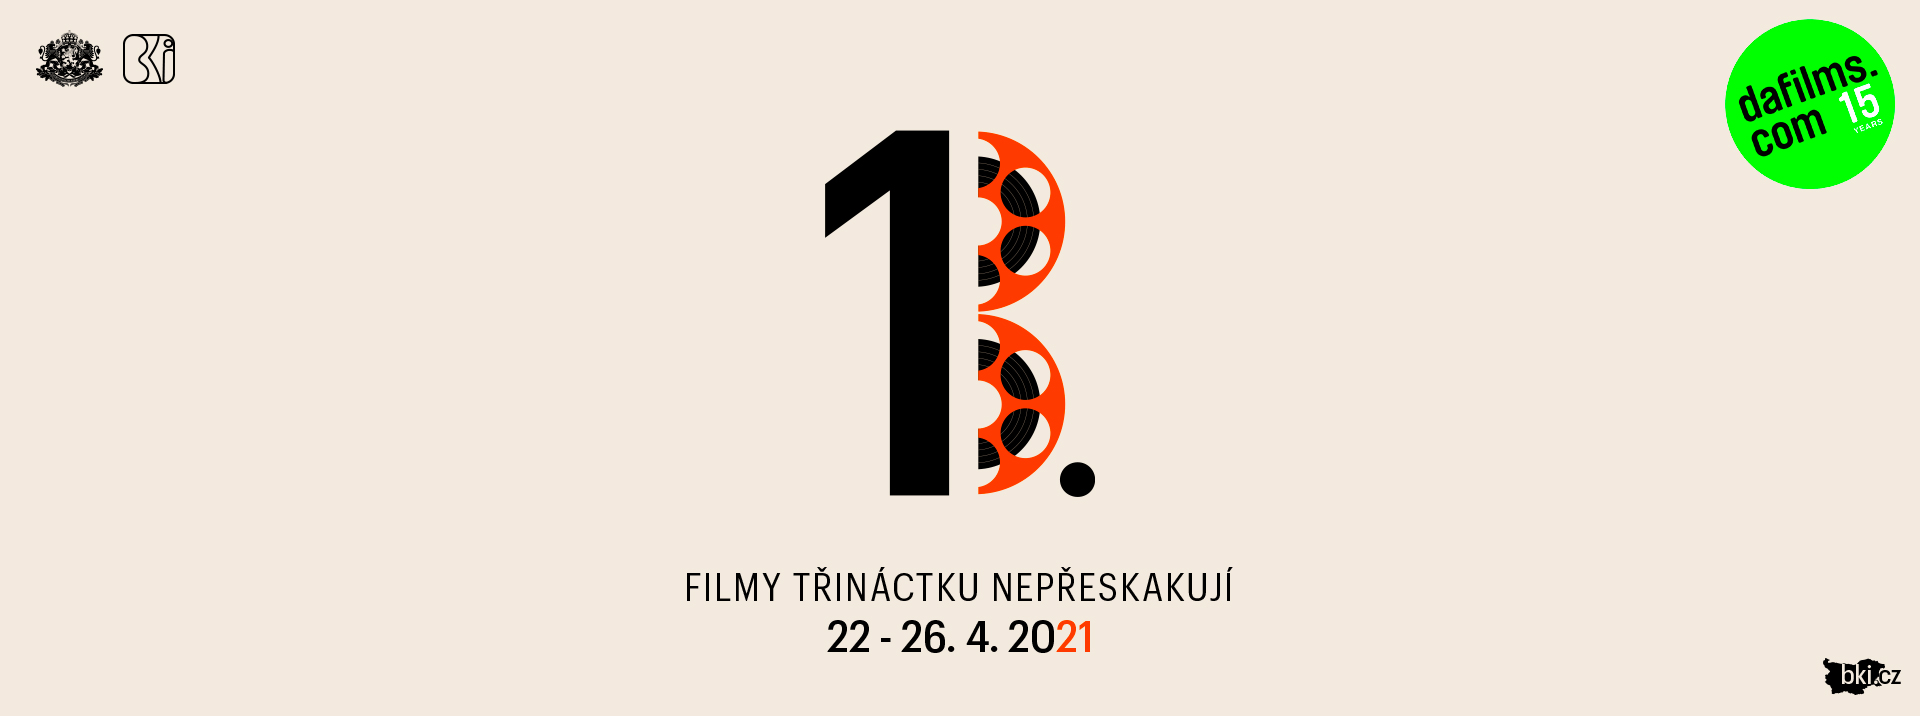 13 is a Good Number for Bulgarian Cinema in the Czech Republic